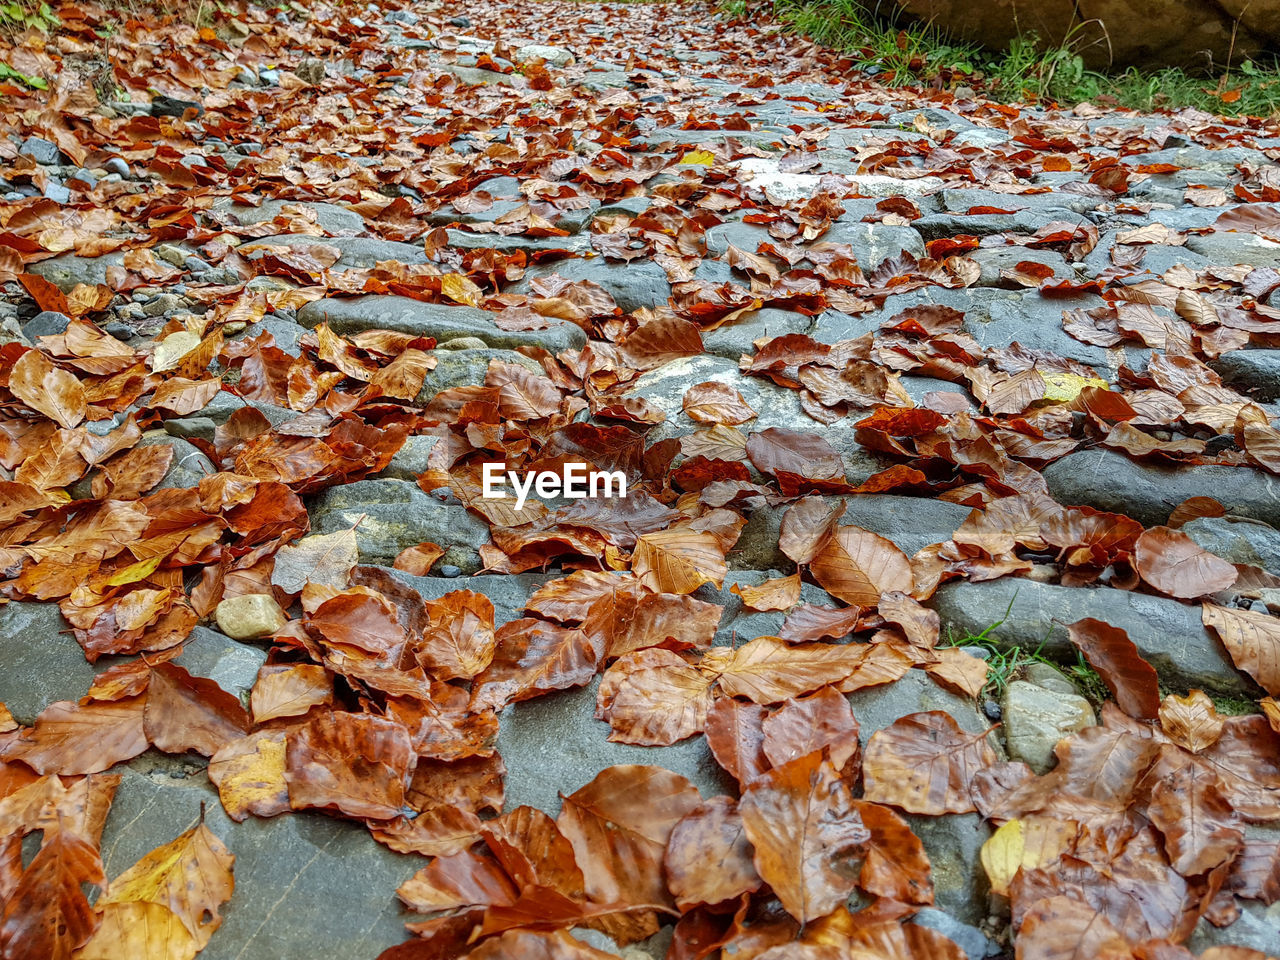 leaf, plant part, day, change, autumn, dry, leaves, no people, nature, abundance, land, full frame, field, backgrounds, beauty in nature, close-up, outdoors, falling, high angle view, plant, natural condition, surface level, fall